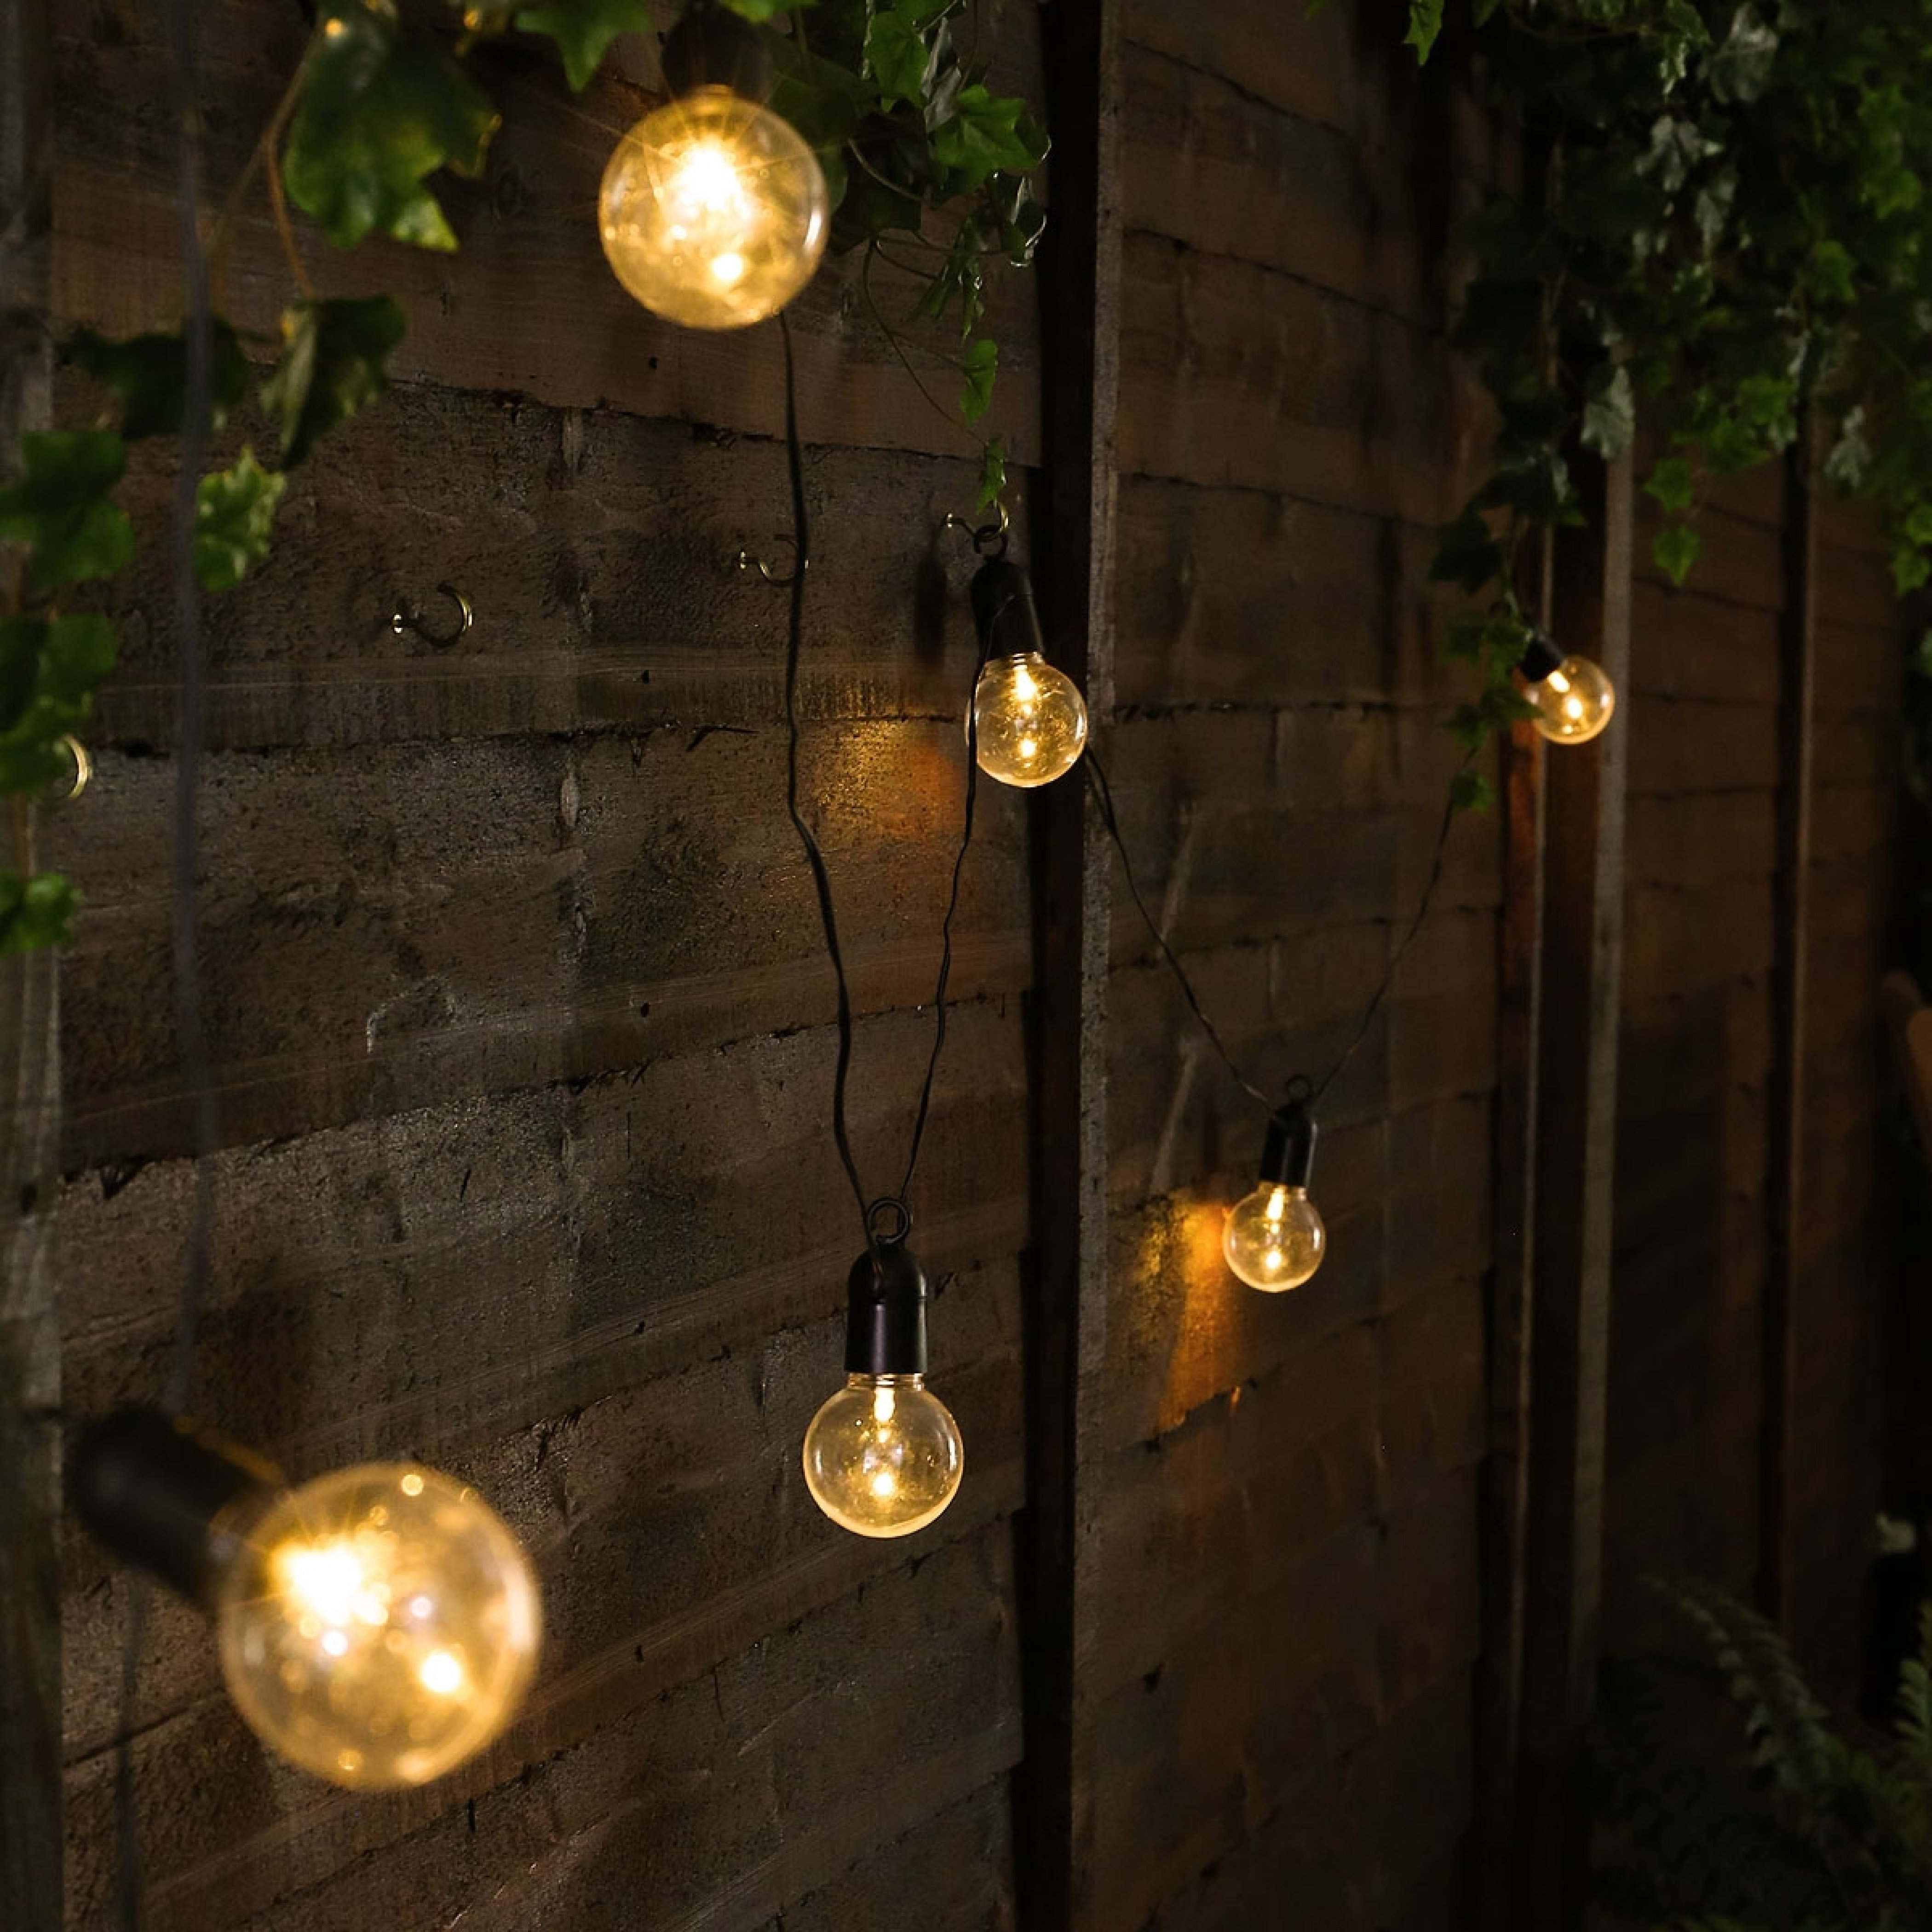 Trendy Battery Operated Outdoor Lighting Inside Outdoor Battery Operated Lights: Feel Good Lighting At Festive Lights (View 3 of 20)